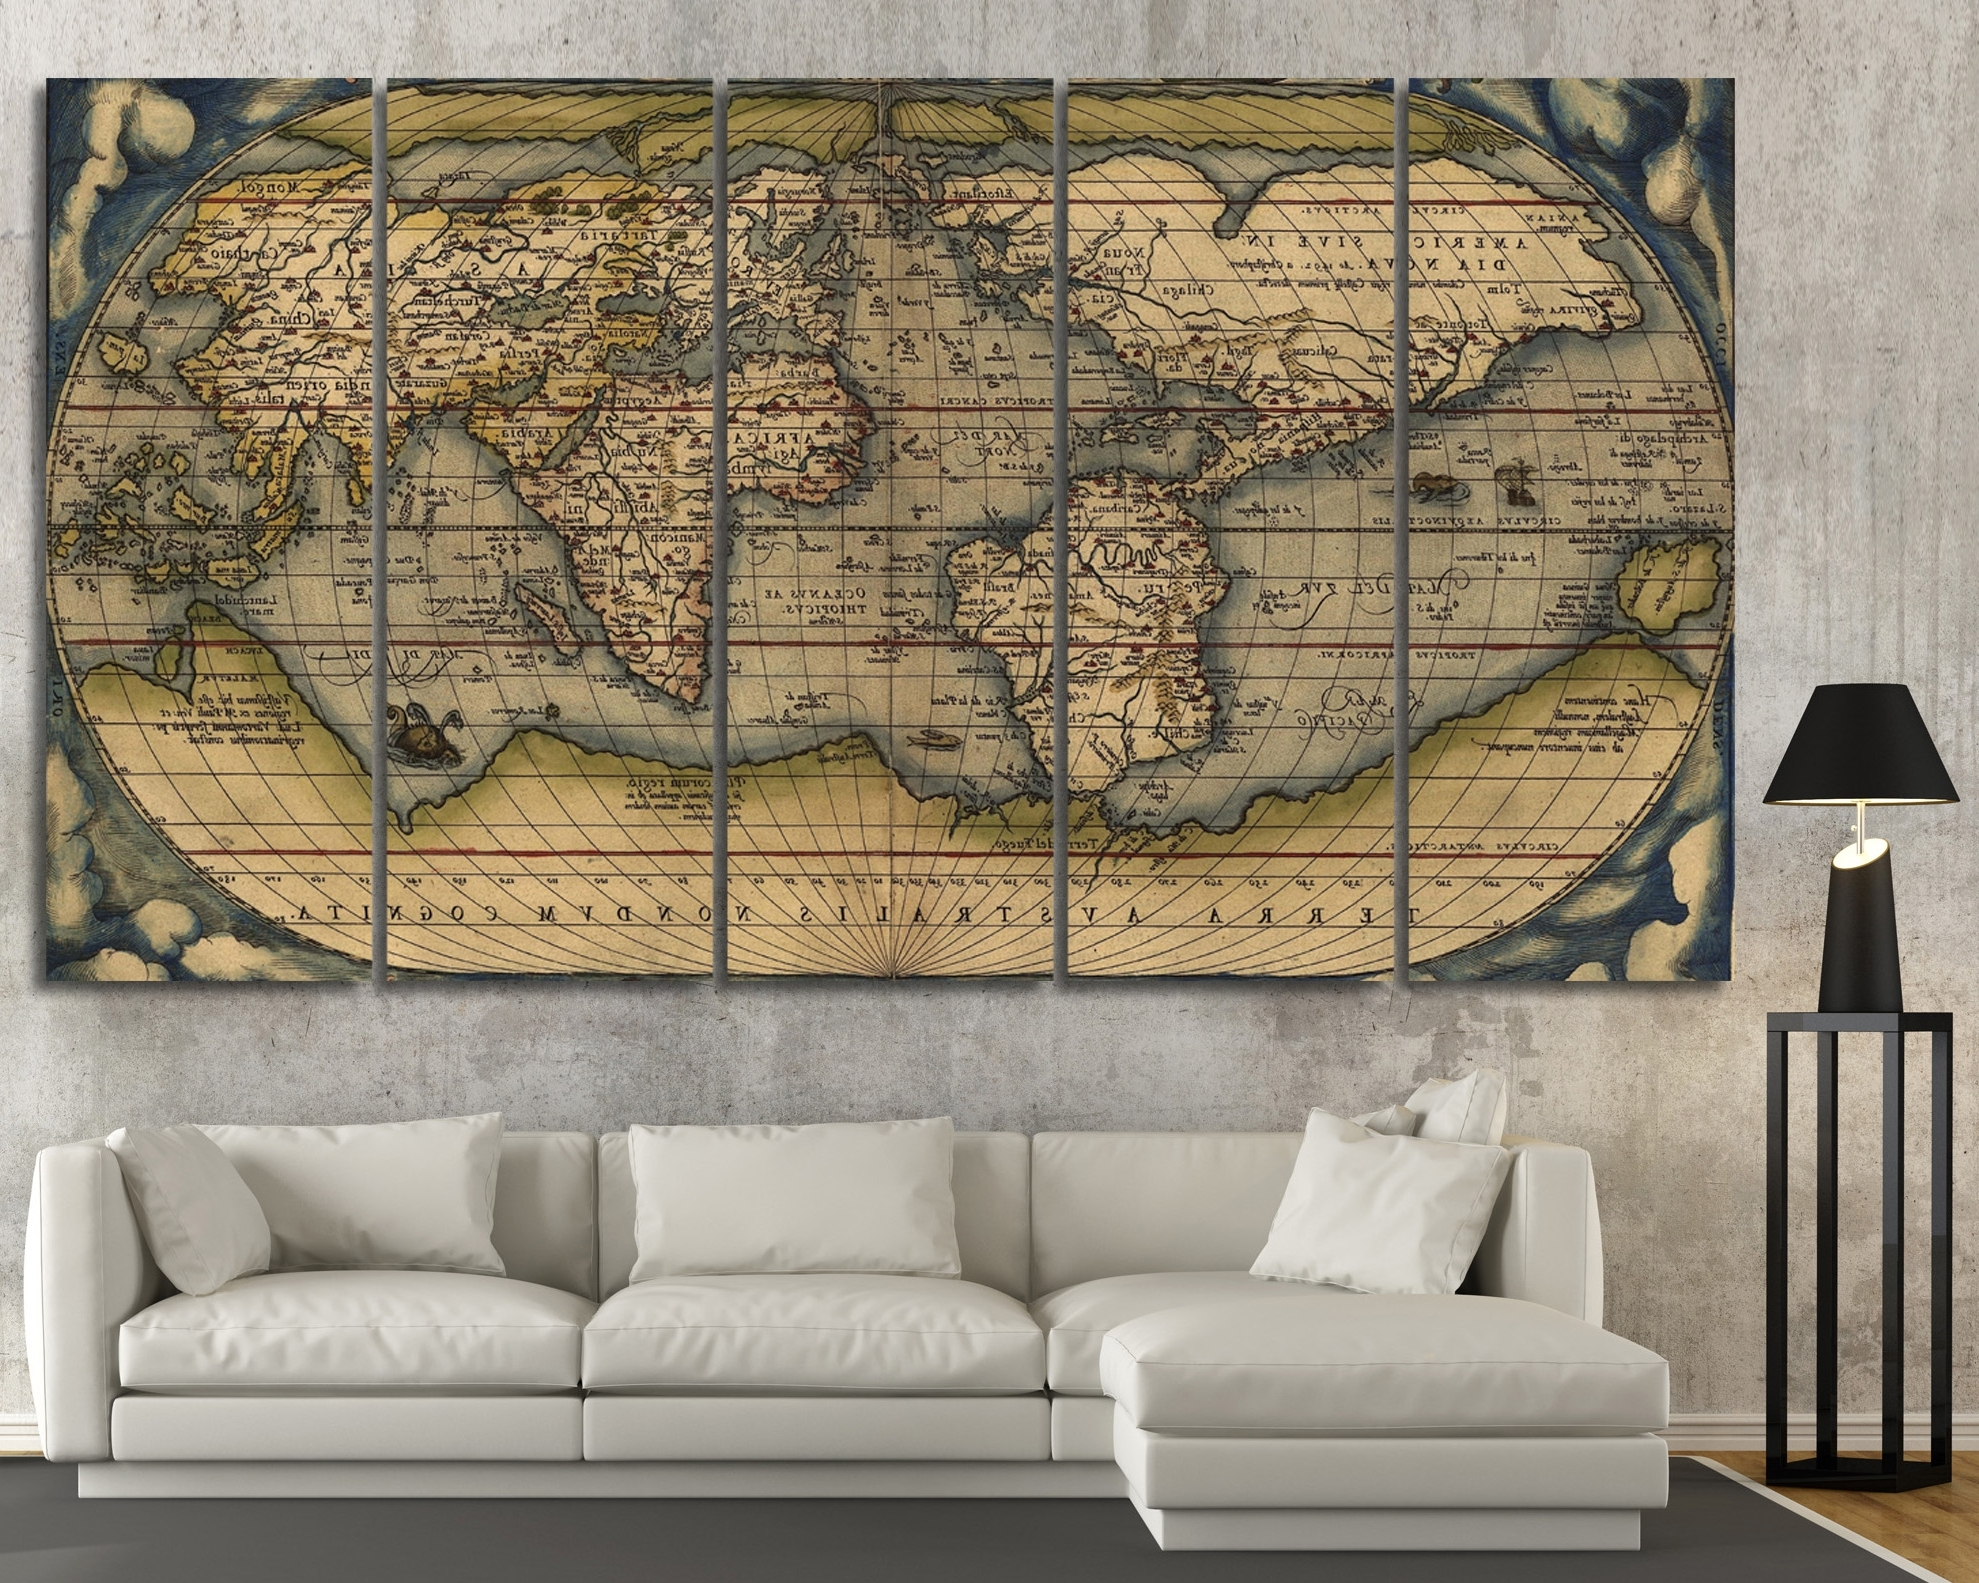 Large Vintage Wall Art Old World Map At Texelprintart Pertaining To Most Current Maps Wall Art (Gallery 1 of 20)